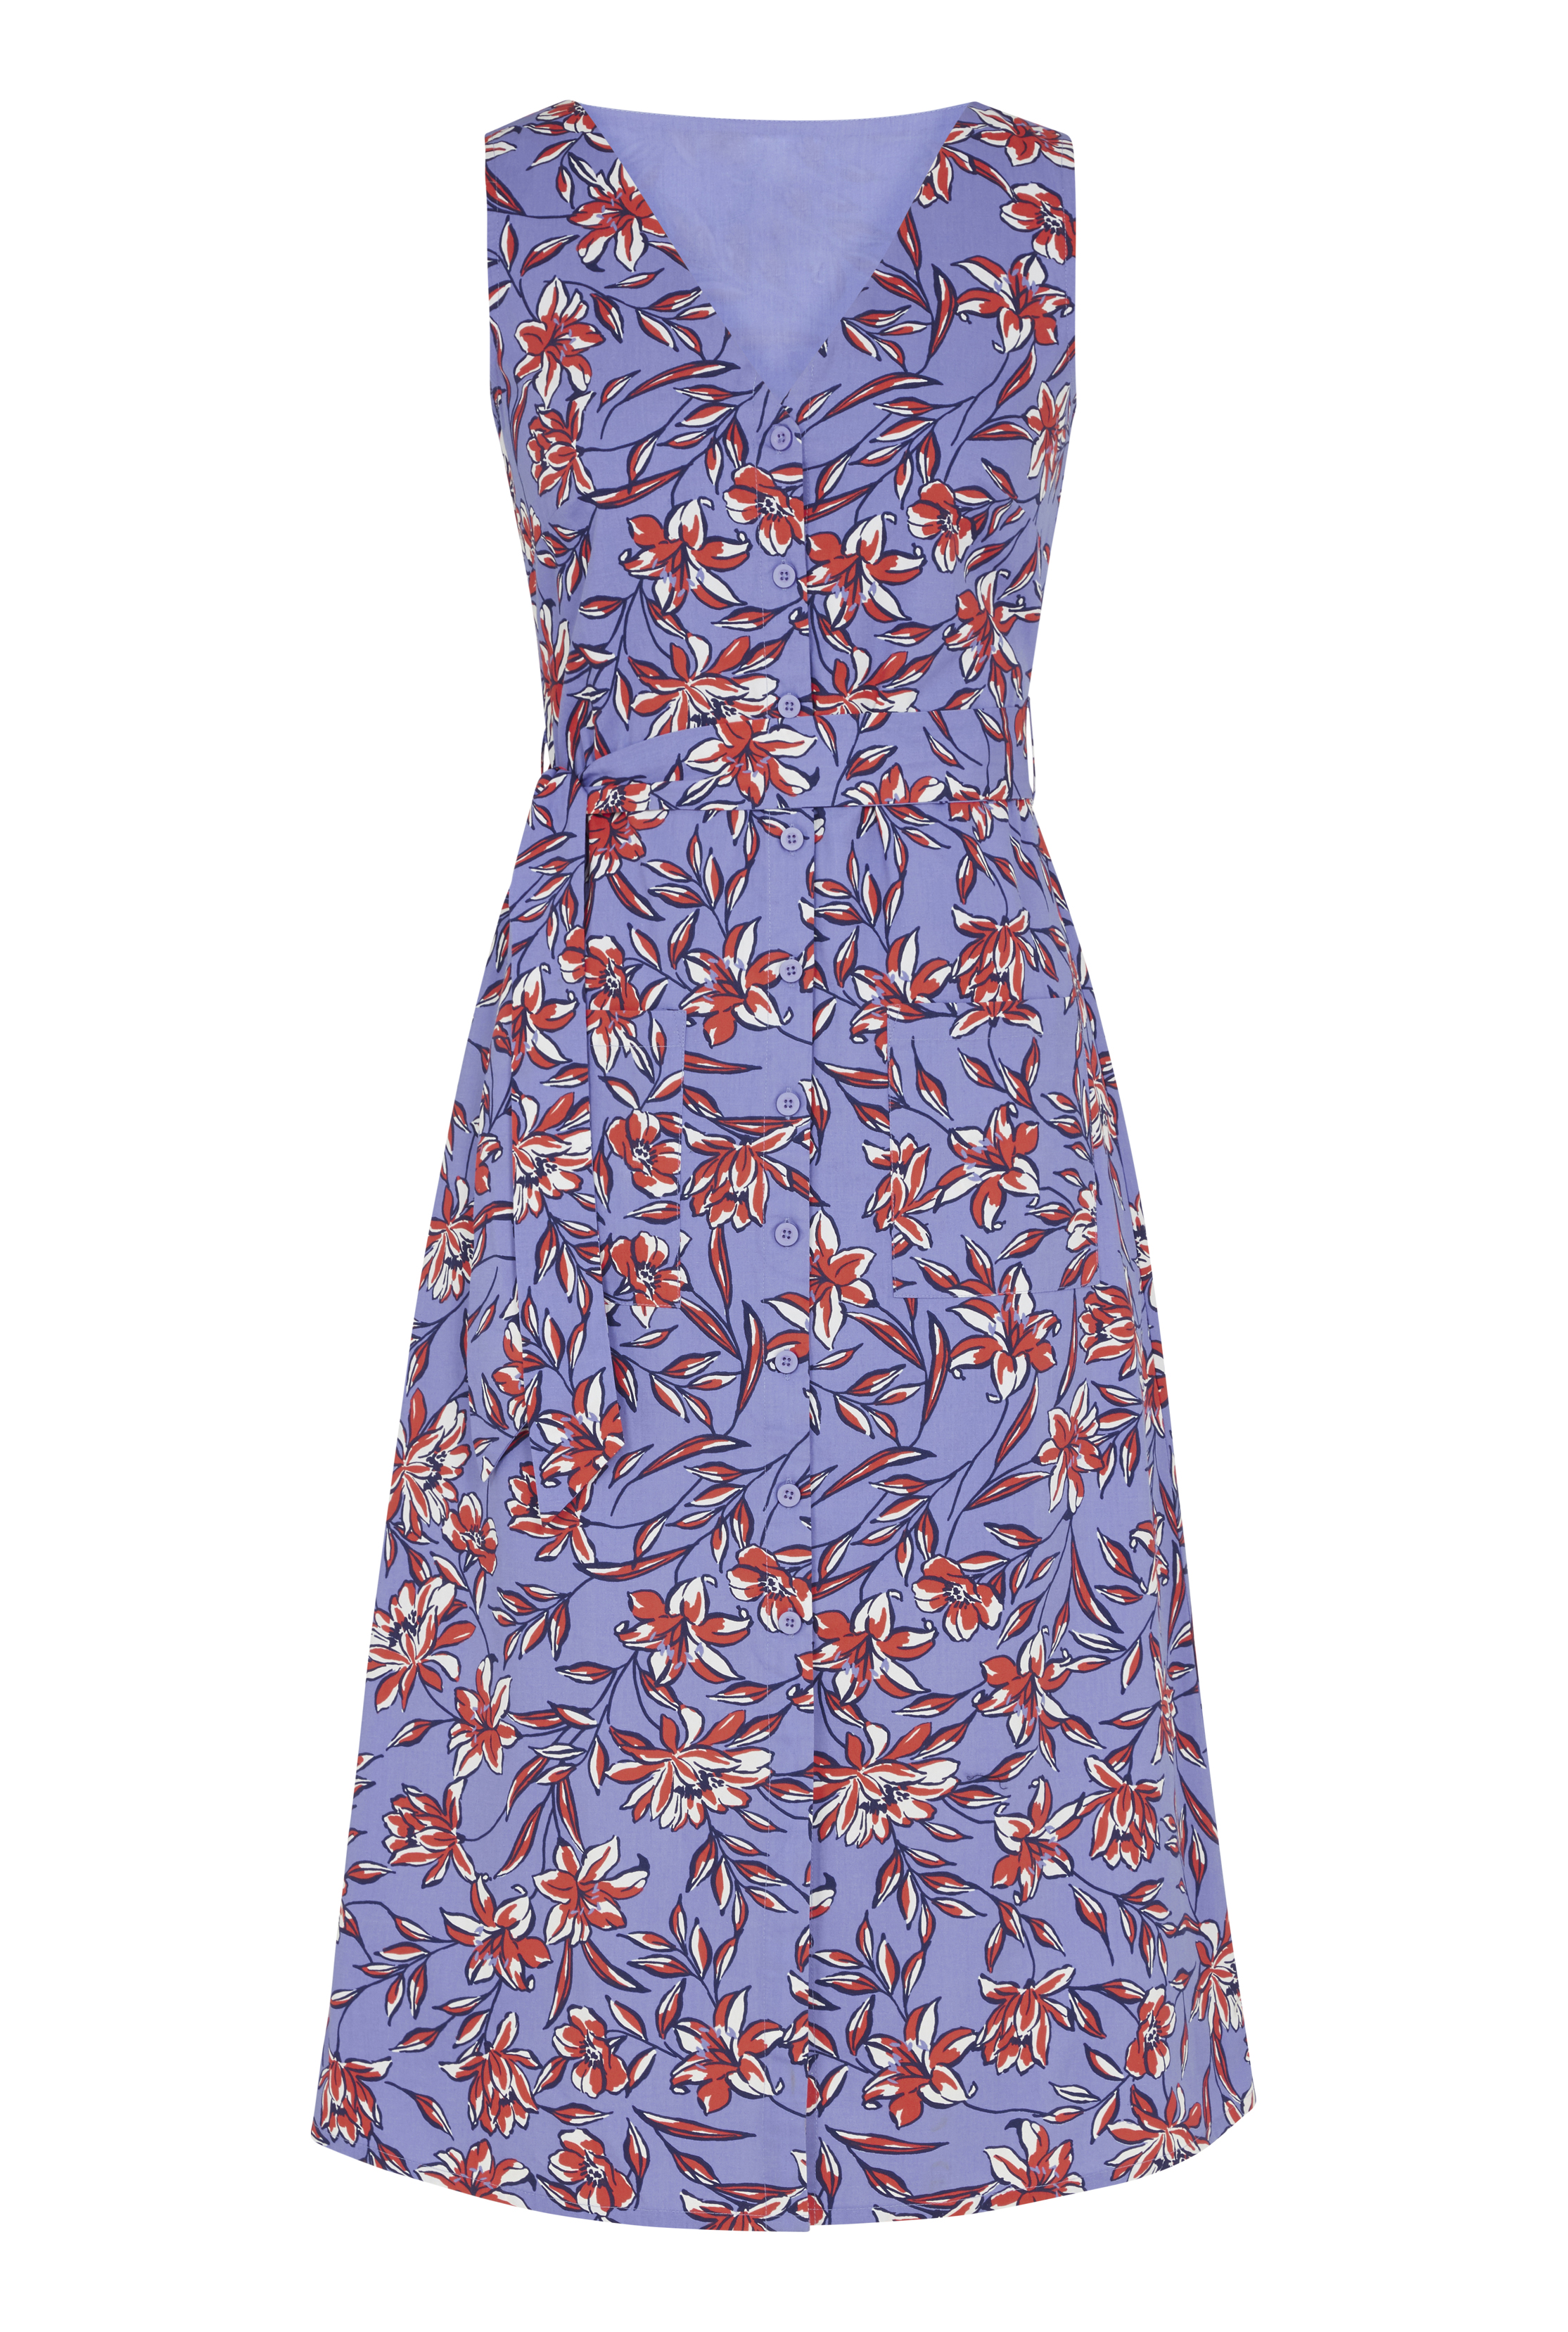 Purple Floral Cotton Fit And Flare Dress